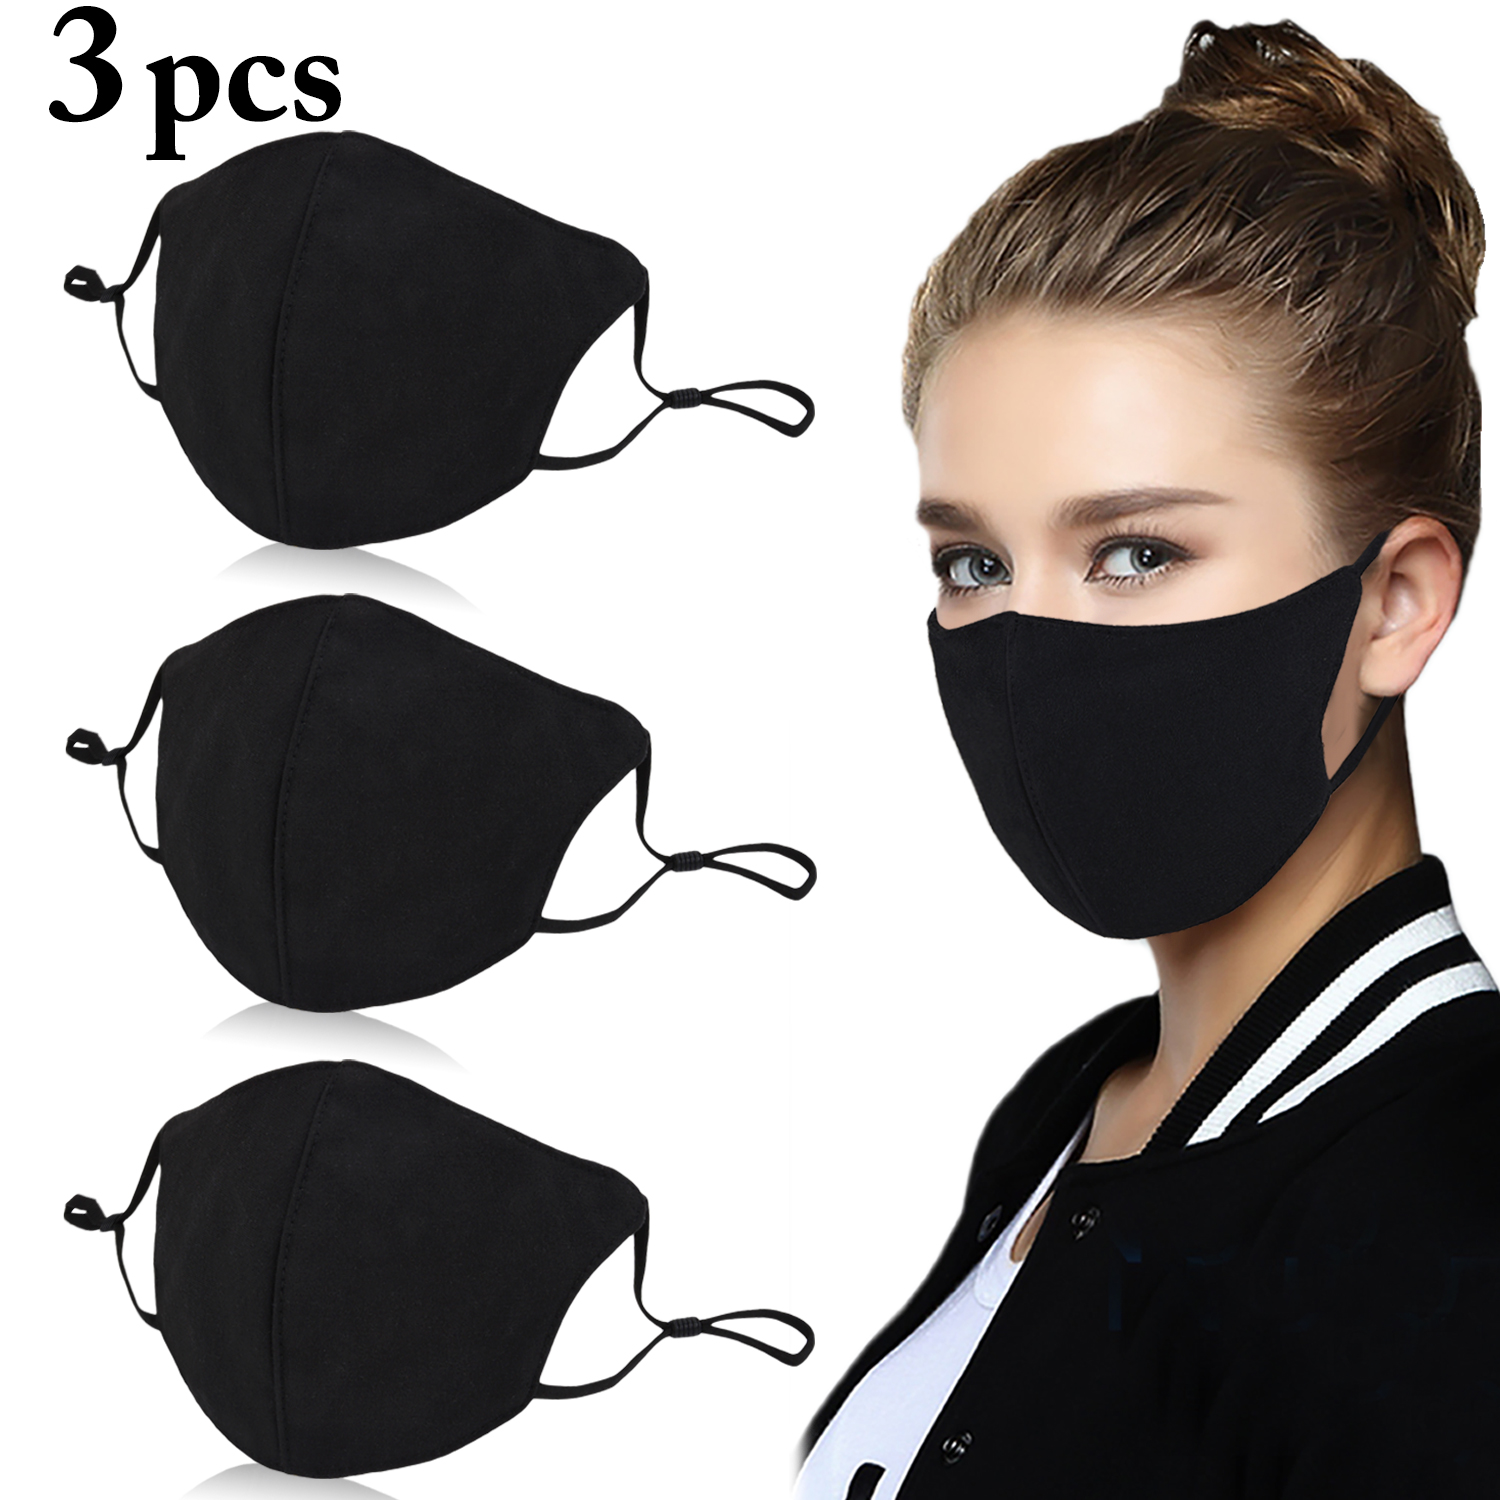 3Pcs Women Black Bilayer Cotton Mouth Mask Anti Haze Dust Washable Reusable Double Layer Dustproof Mouth-muffle Winter Warm Mask